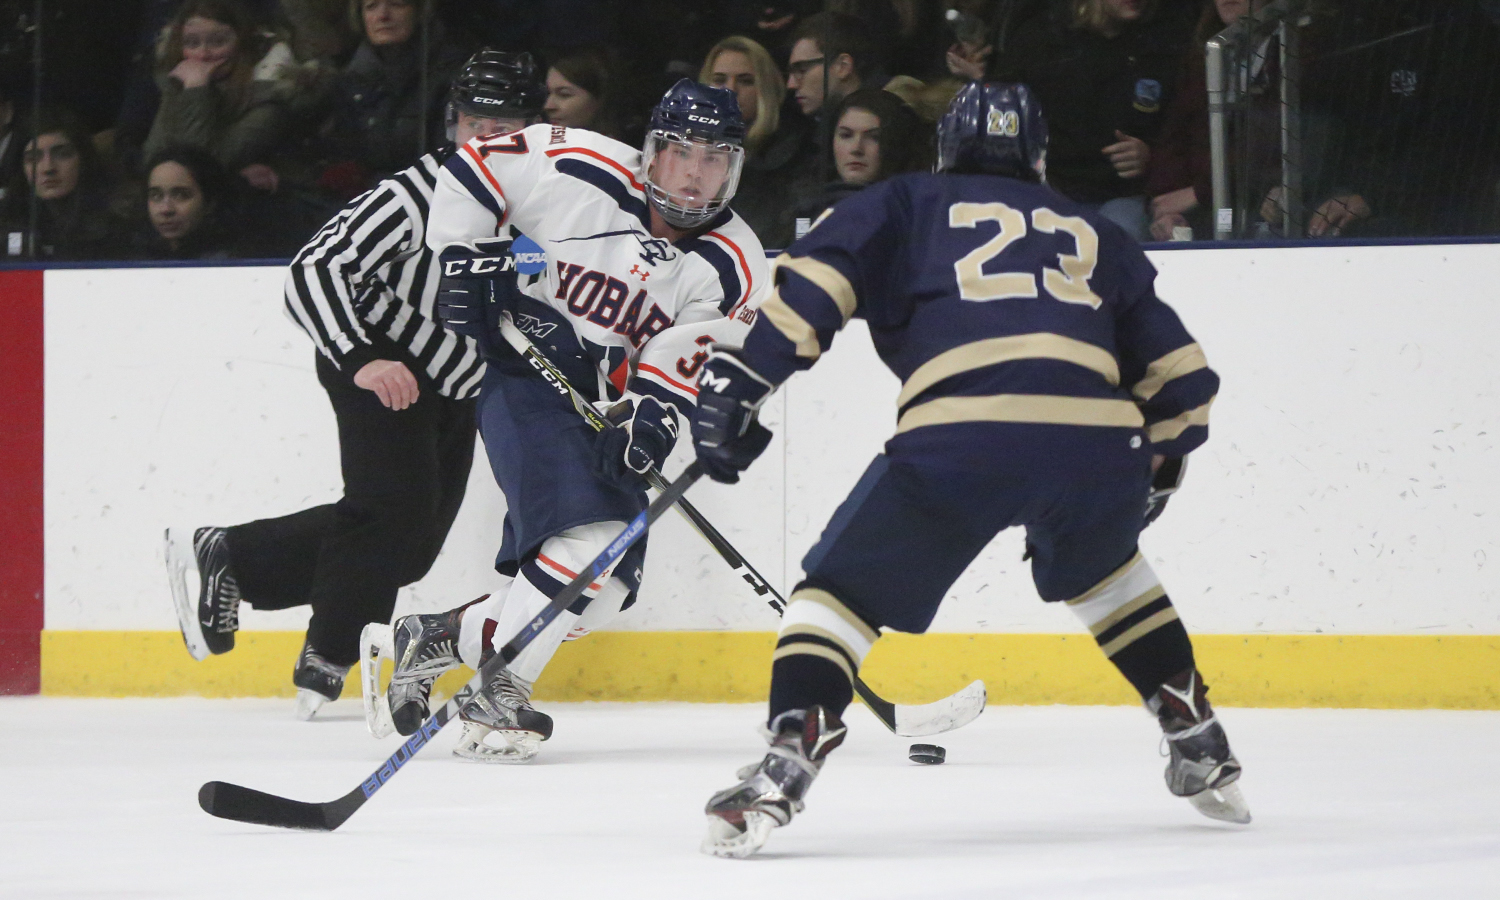 Mark Benemerito '21 looks for an open teammate during Hobart's 5-3 win over Suffolk University at the Cooler.